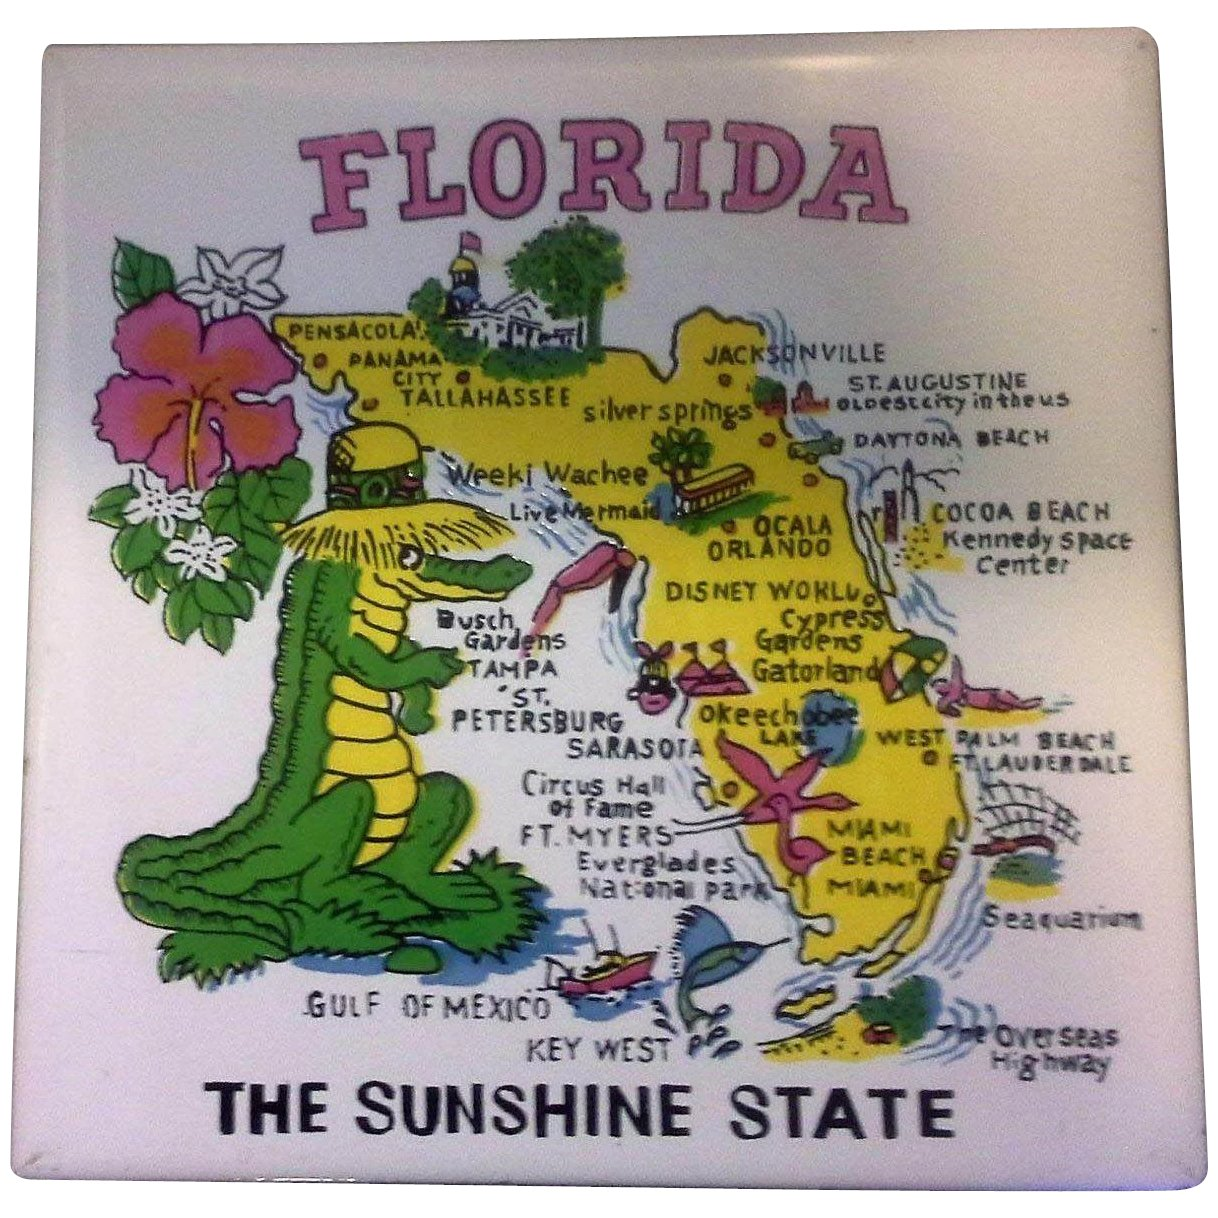 Florida Map Souvenir Tile Trivet Ceramic Made In Philippines Sold